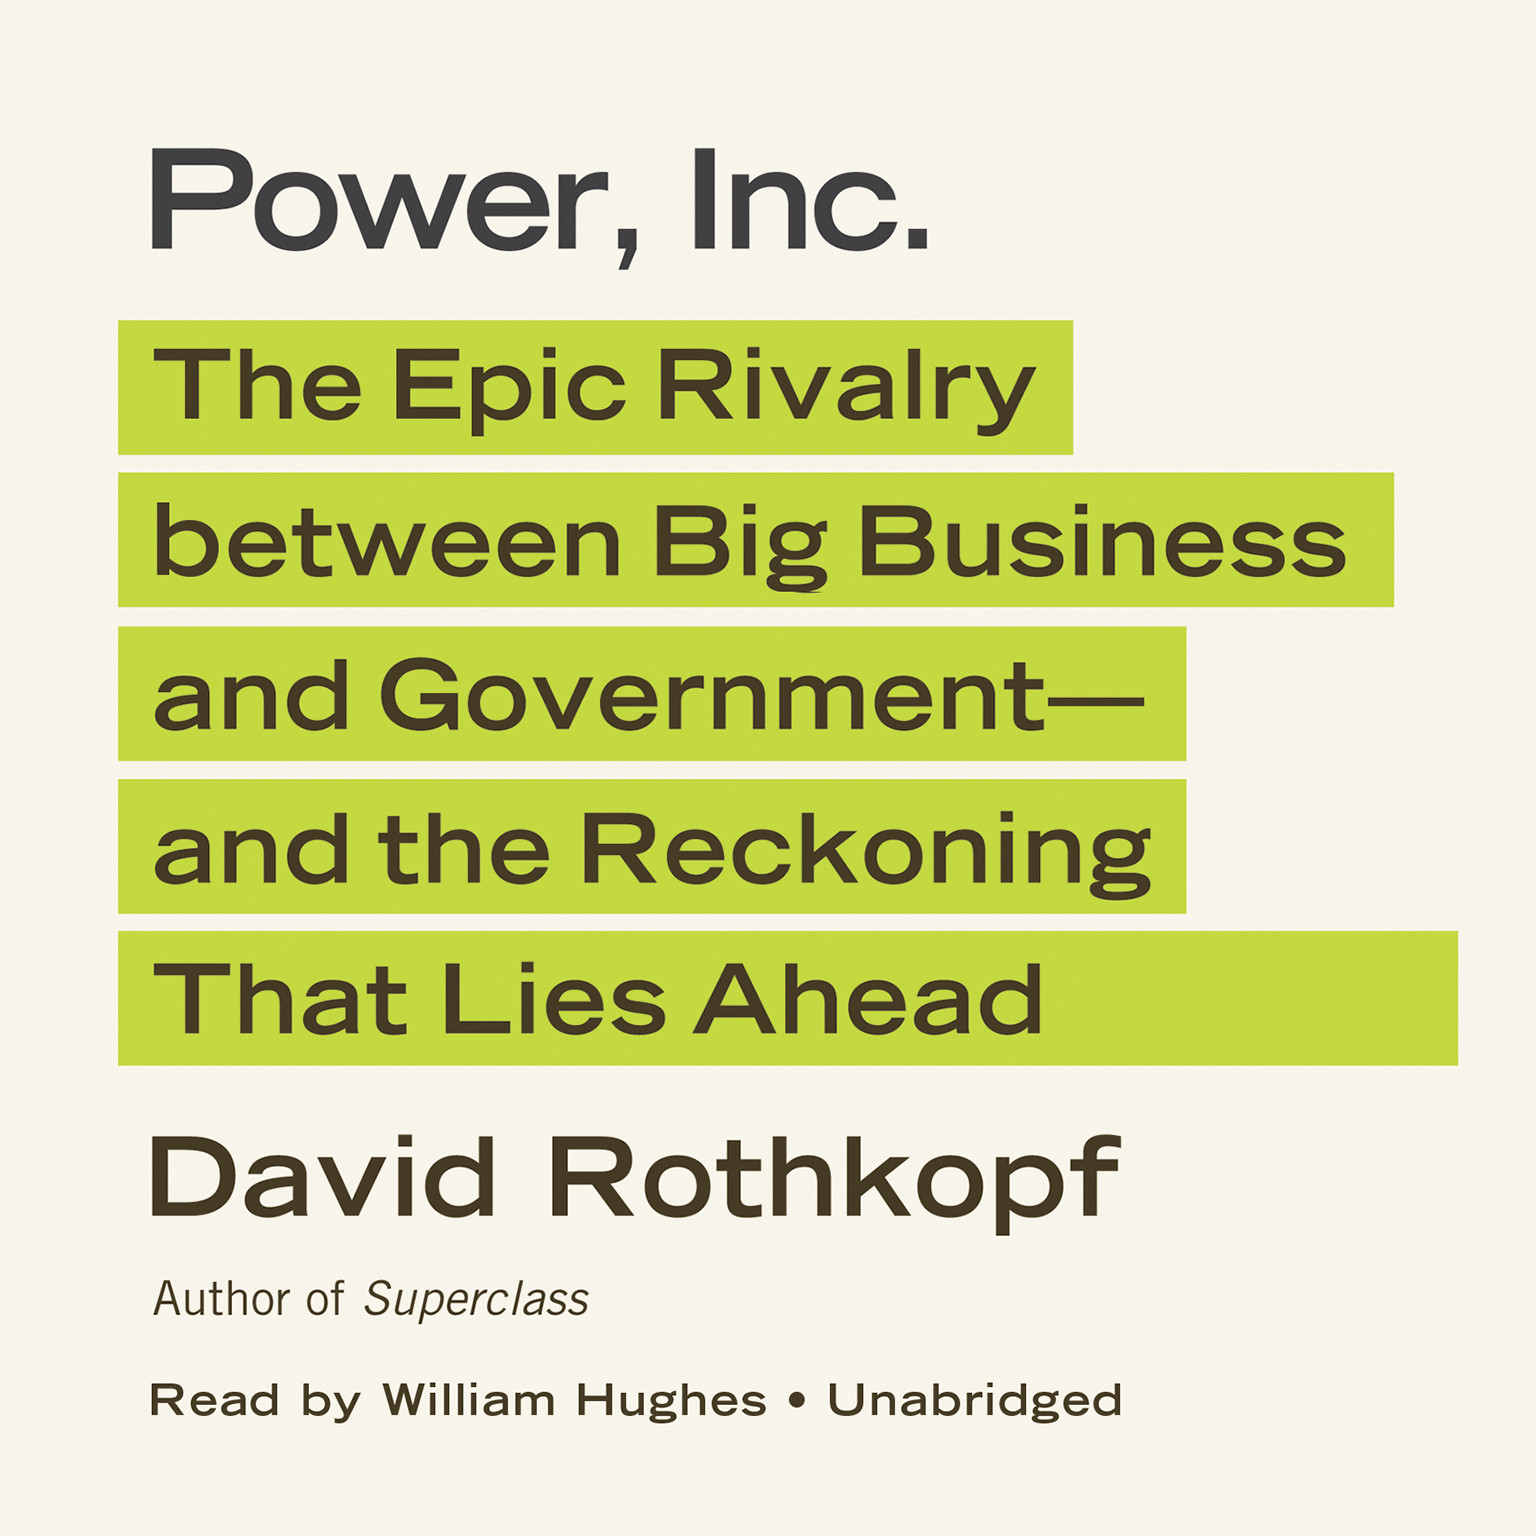 Printable Power, Inc.: The Epic Rivalry between Big Business and Government—and the Reckoning That Lies Ahead Audiobook Cover Art